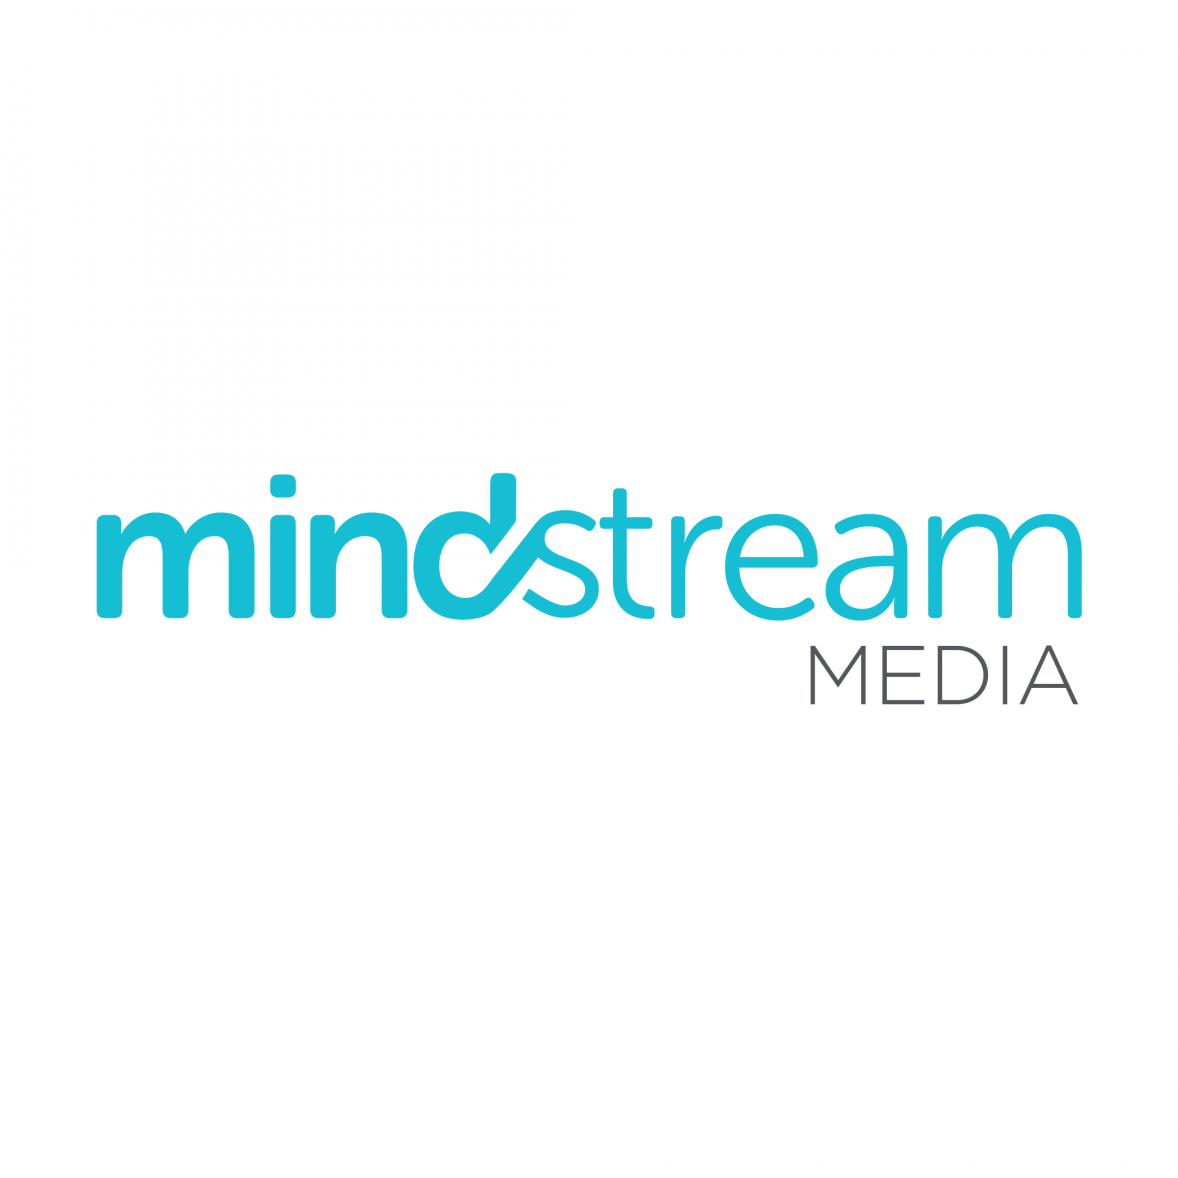 Mindstream Media image 2